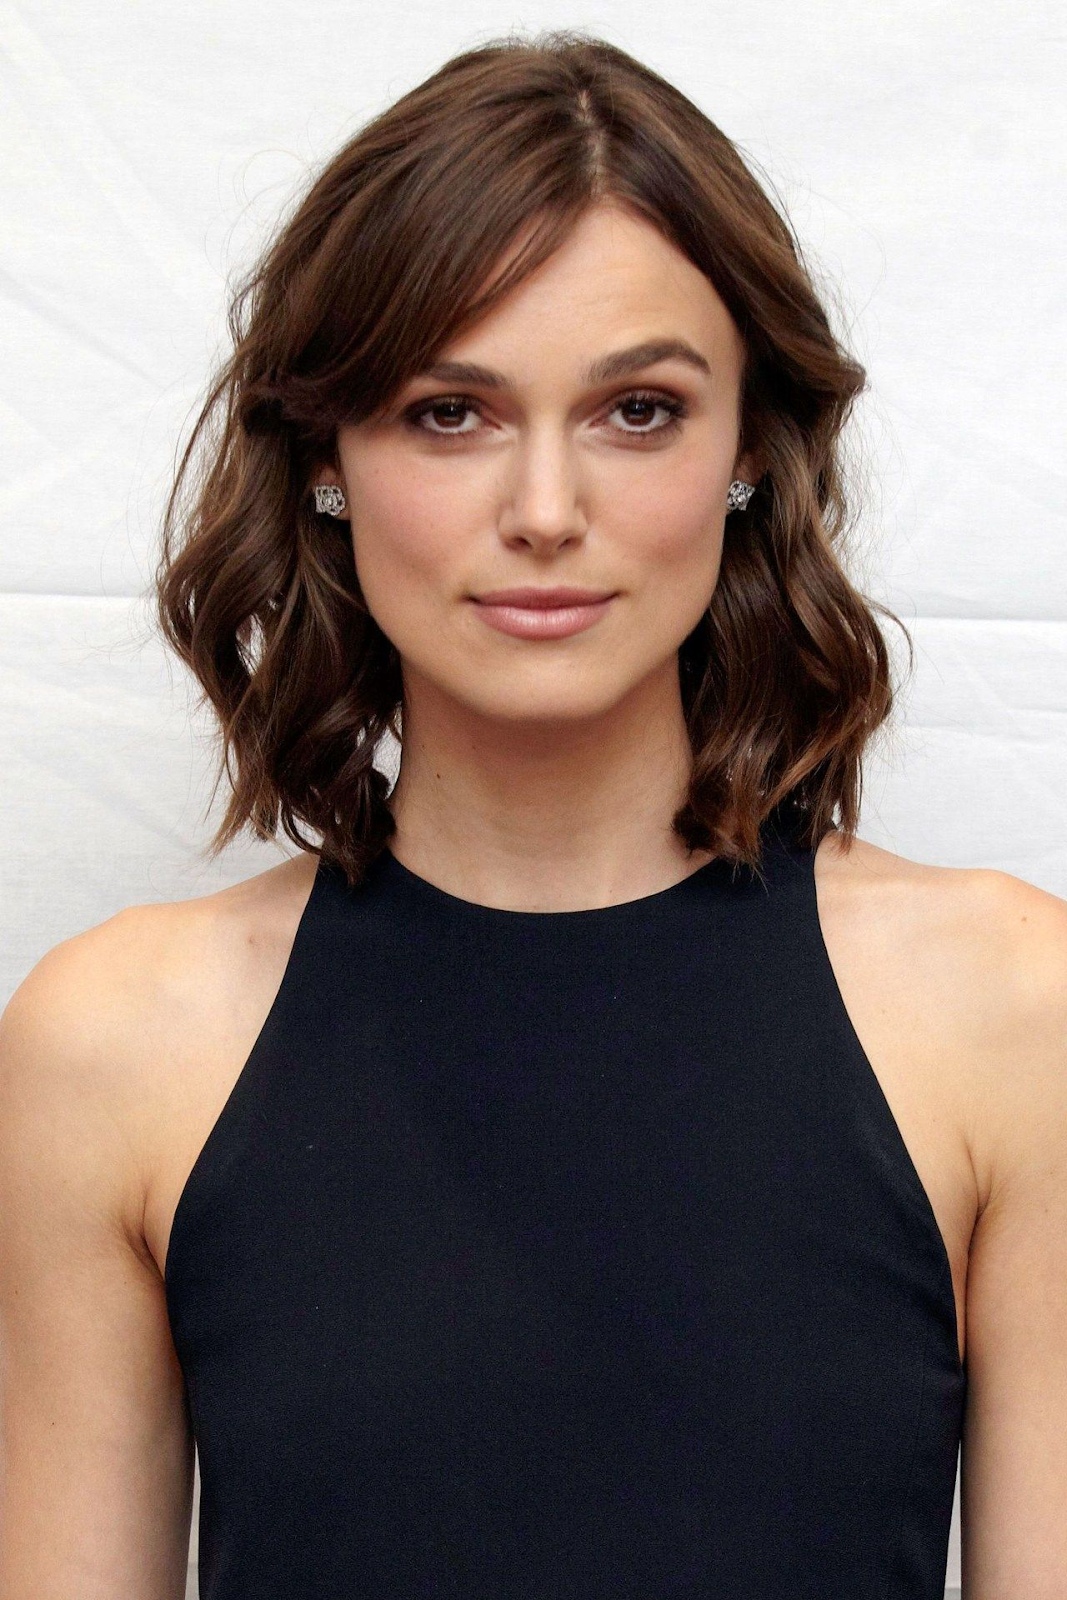 Some Of The Best Keira Knightley Short Hairstyles To Copy From Her